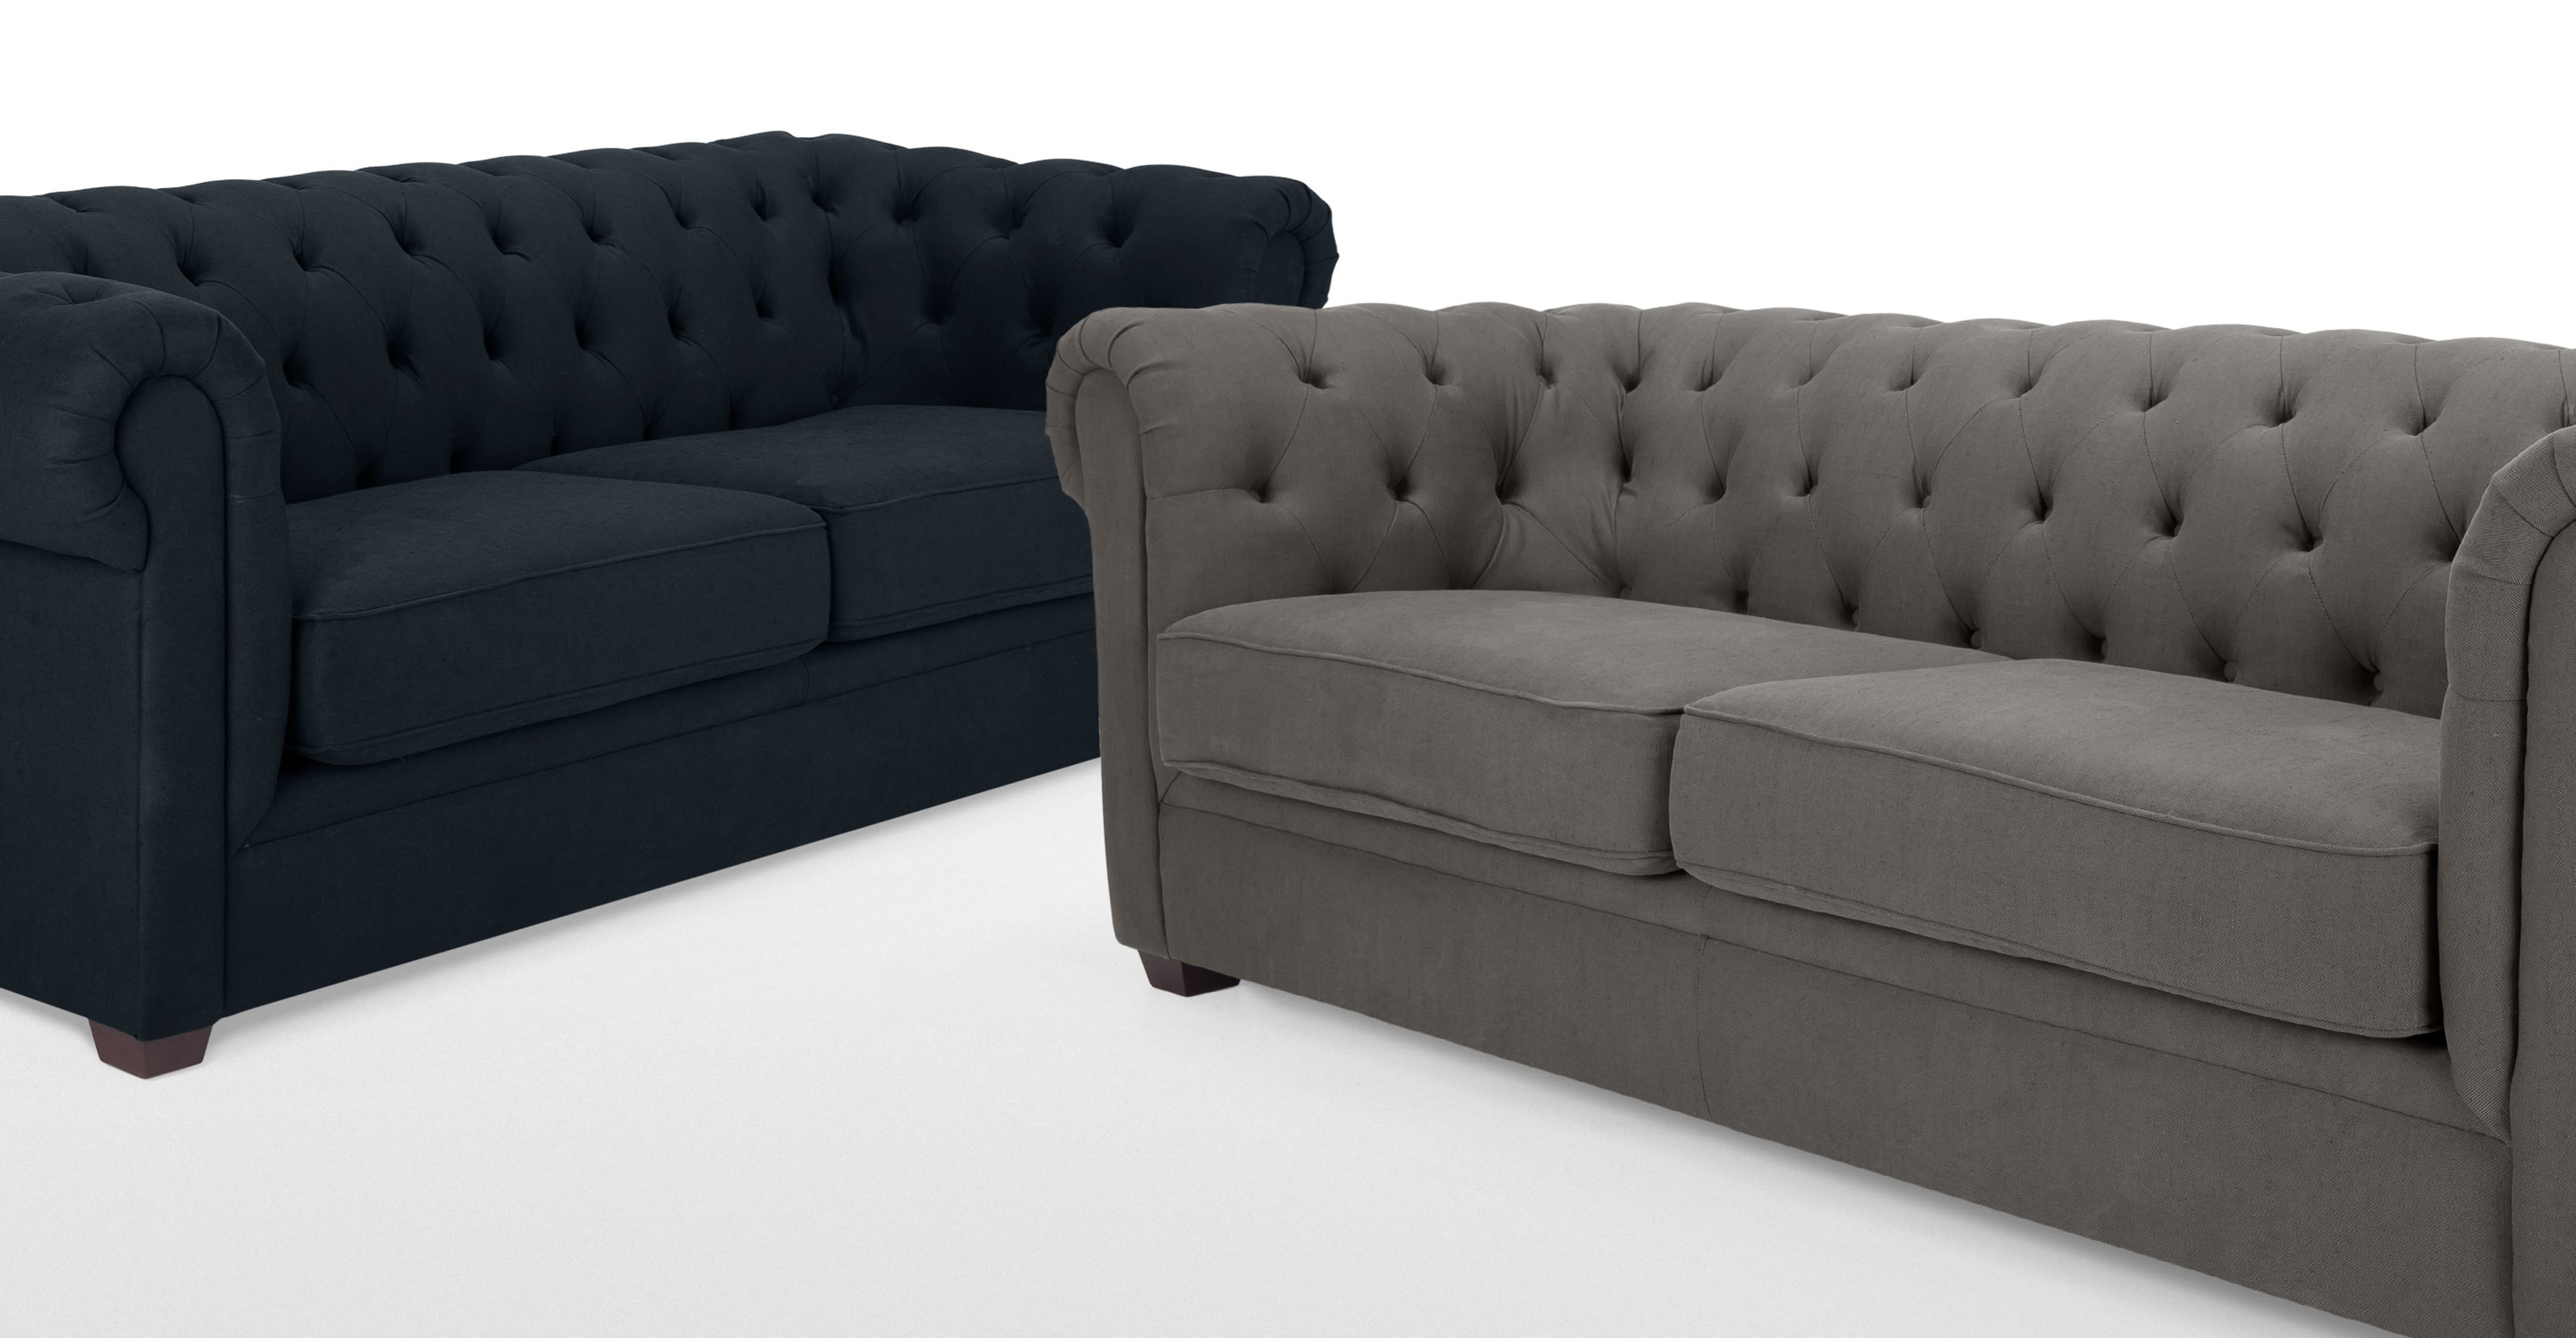 Mayson un canap 3 places chesterfield gris harrier for Canape chesterfield tissu gris